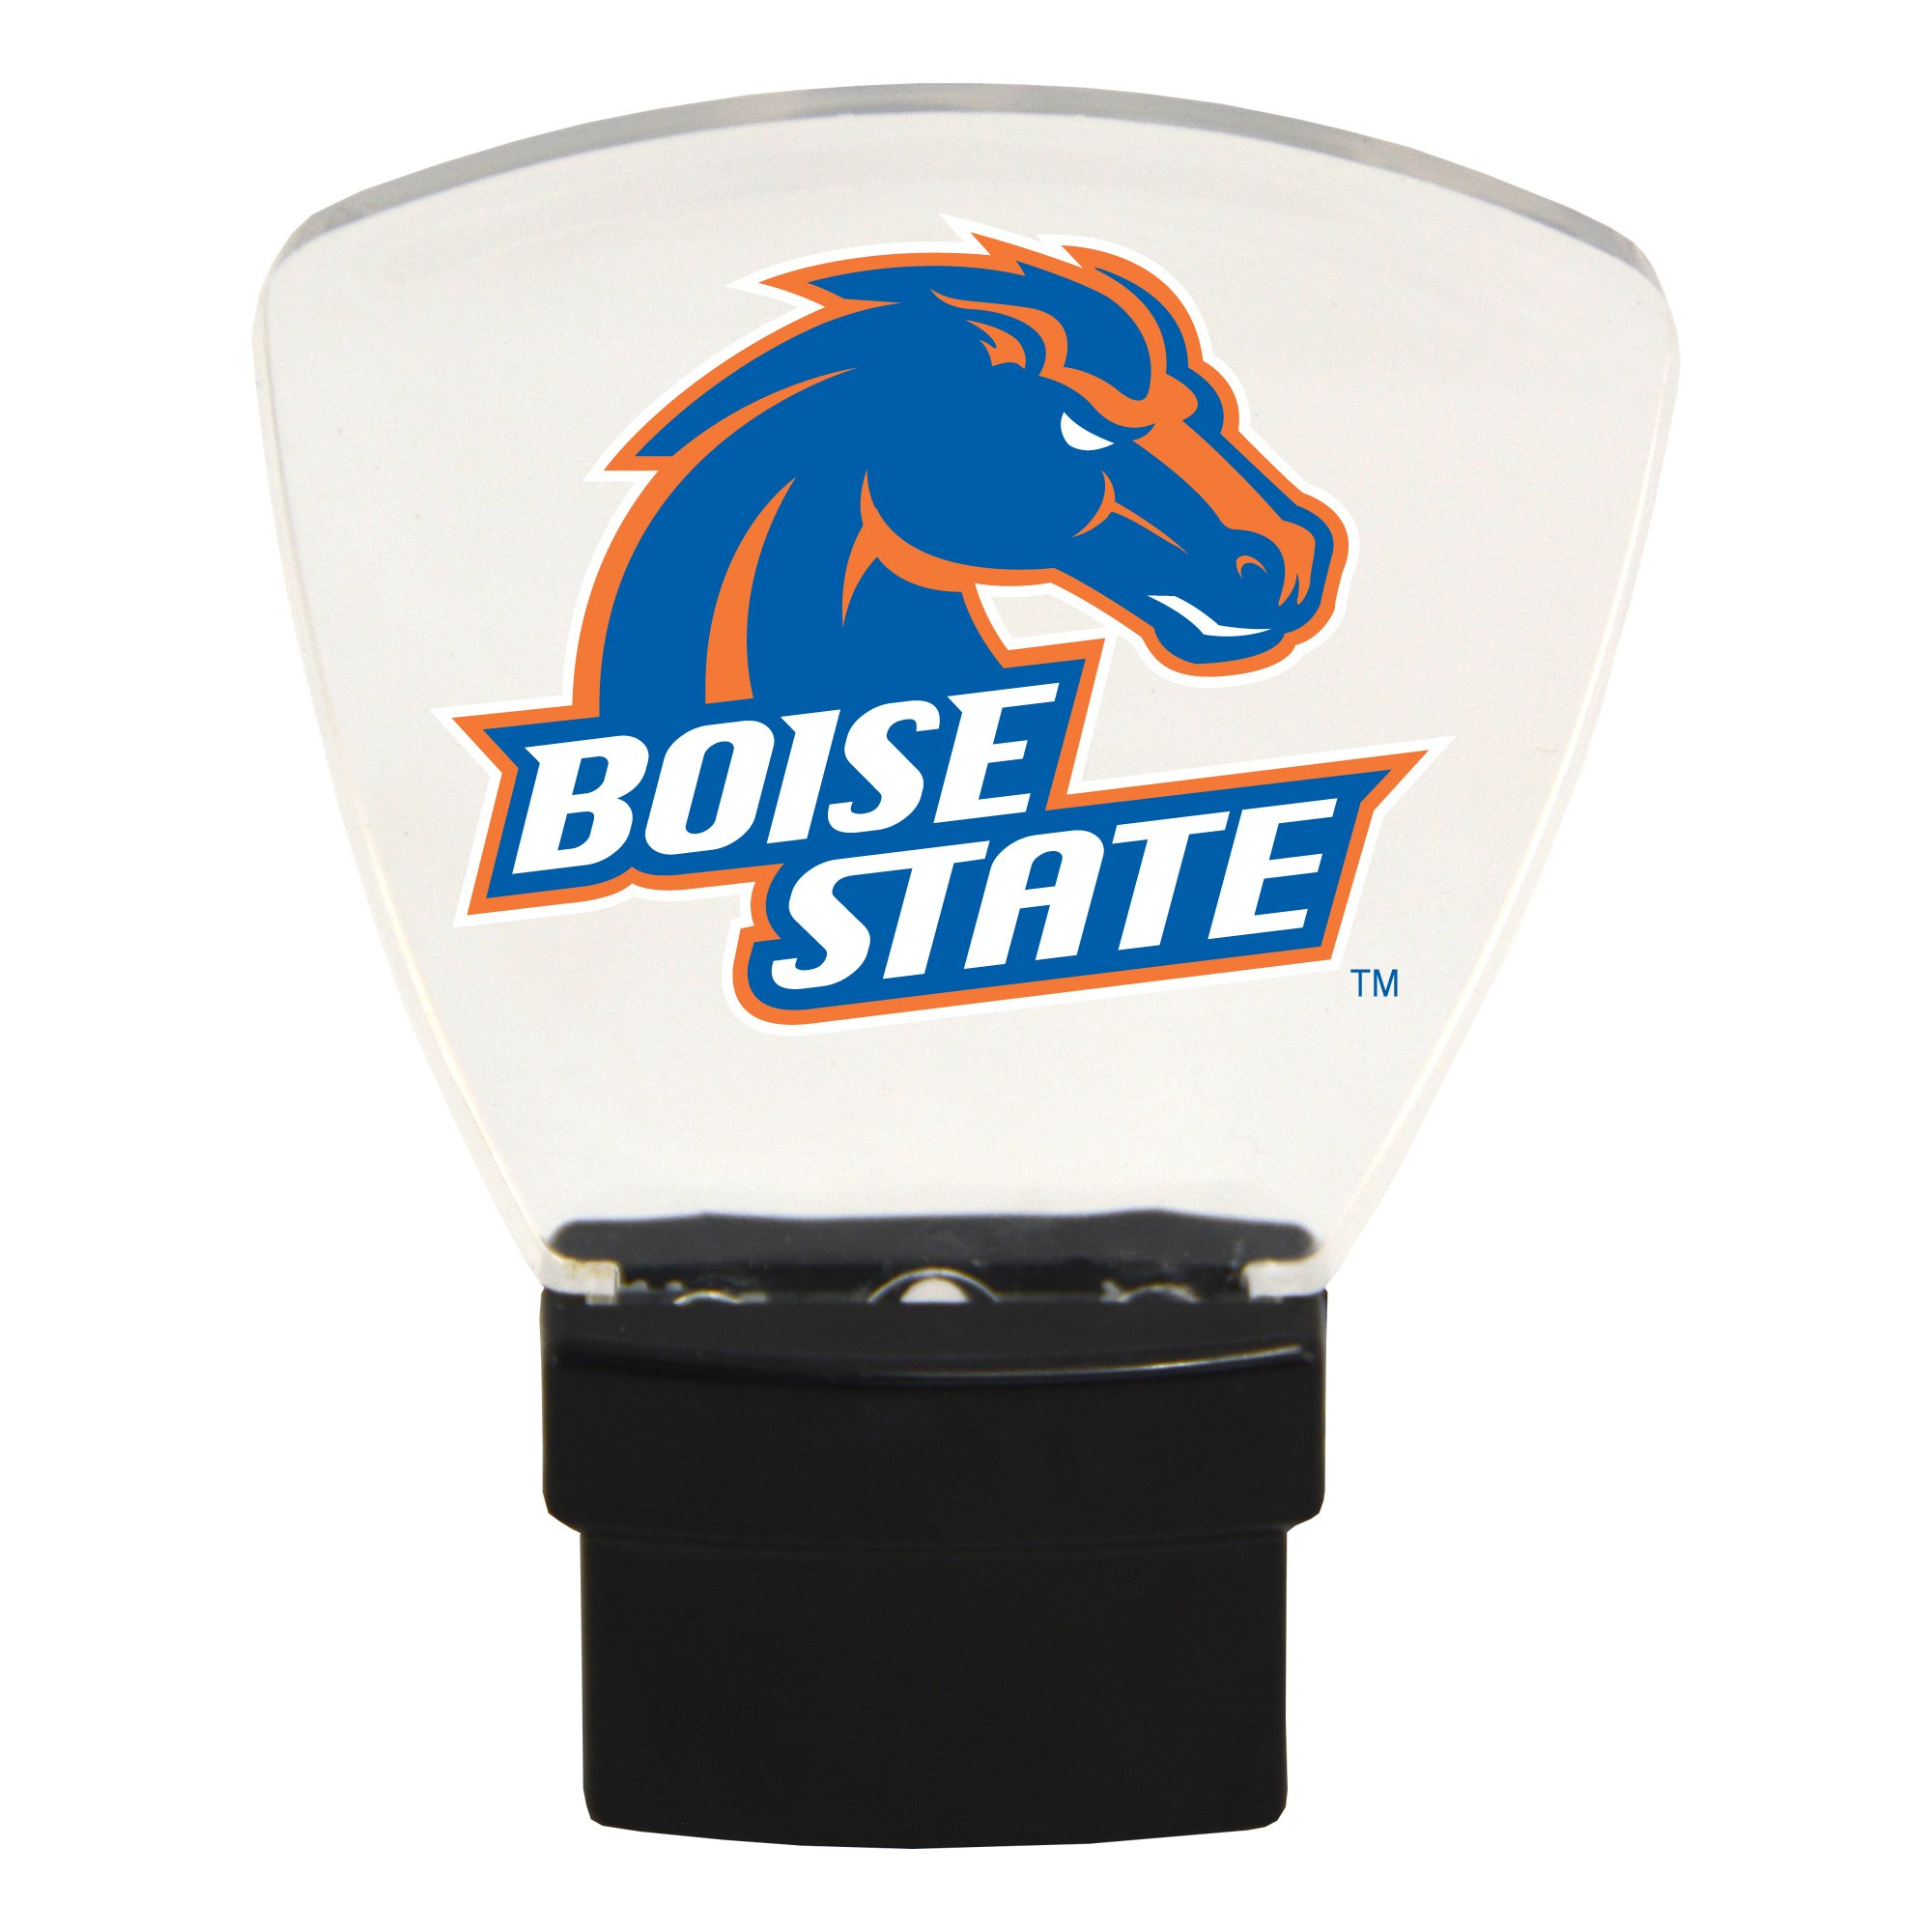 Authentic Street Signs NCAA Officially Licensed-LED NIGHT LIGHT-Super Energy Efficient-Prime Power Saving 0.5 watt, Plug In-Great Sports Fan gift for Adults-Babies-Kids Room (Boise State Broncos)